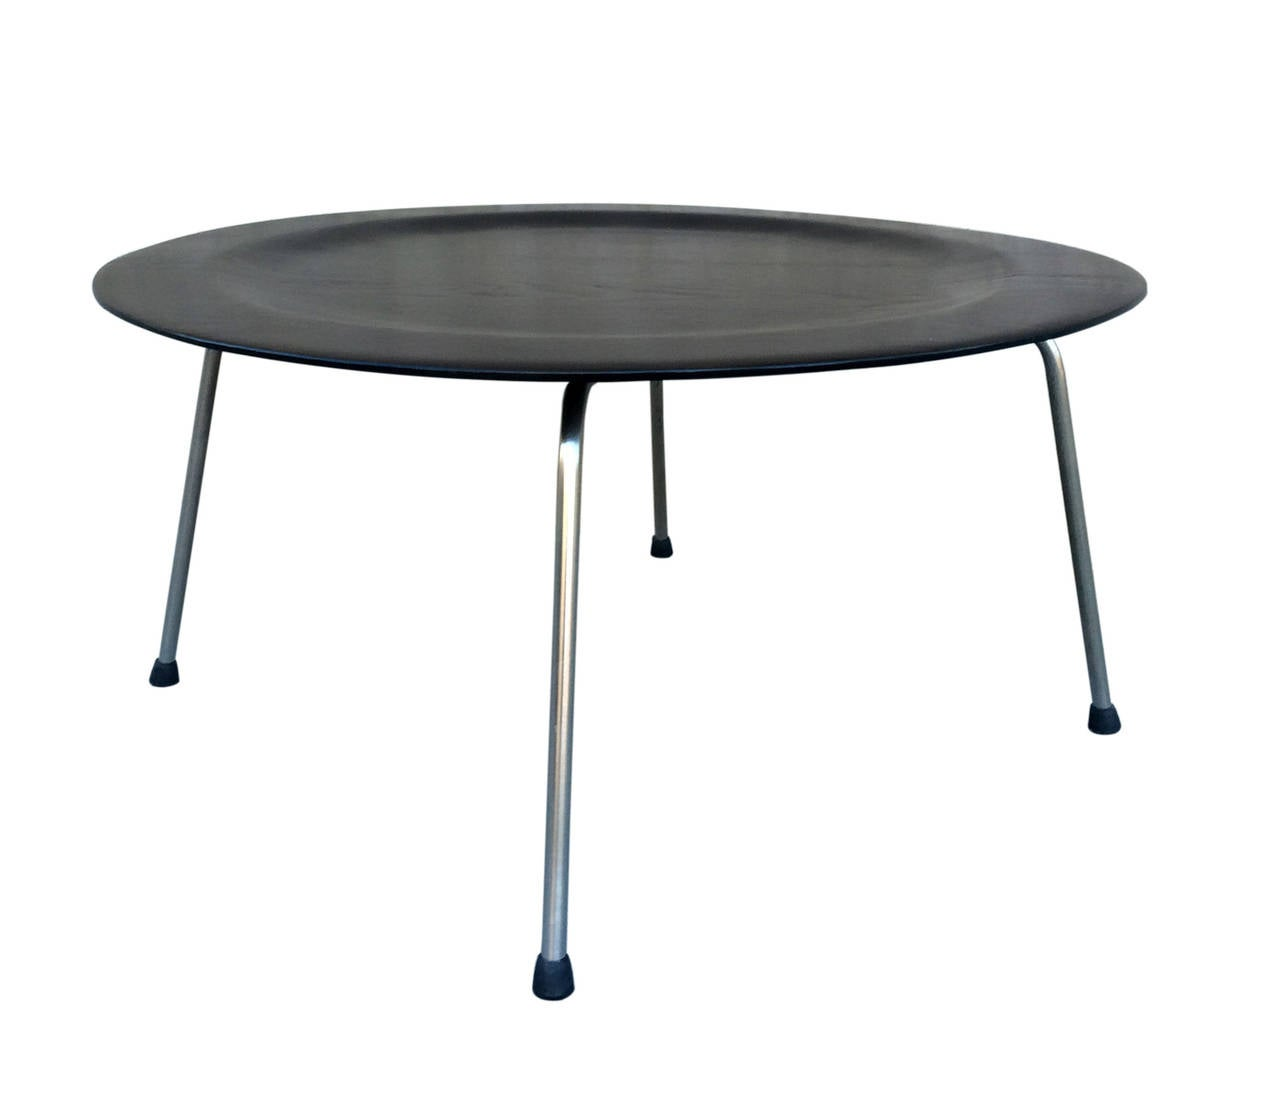 charles eames original ctm coffee or side table at 1stdibs. Black Bedroom Furniture Sets. Home Design Ideas